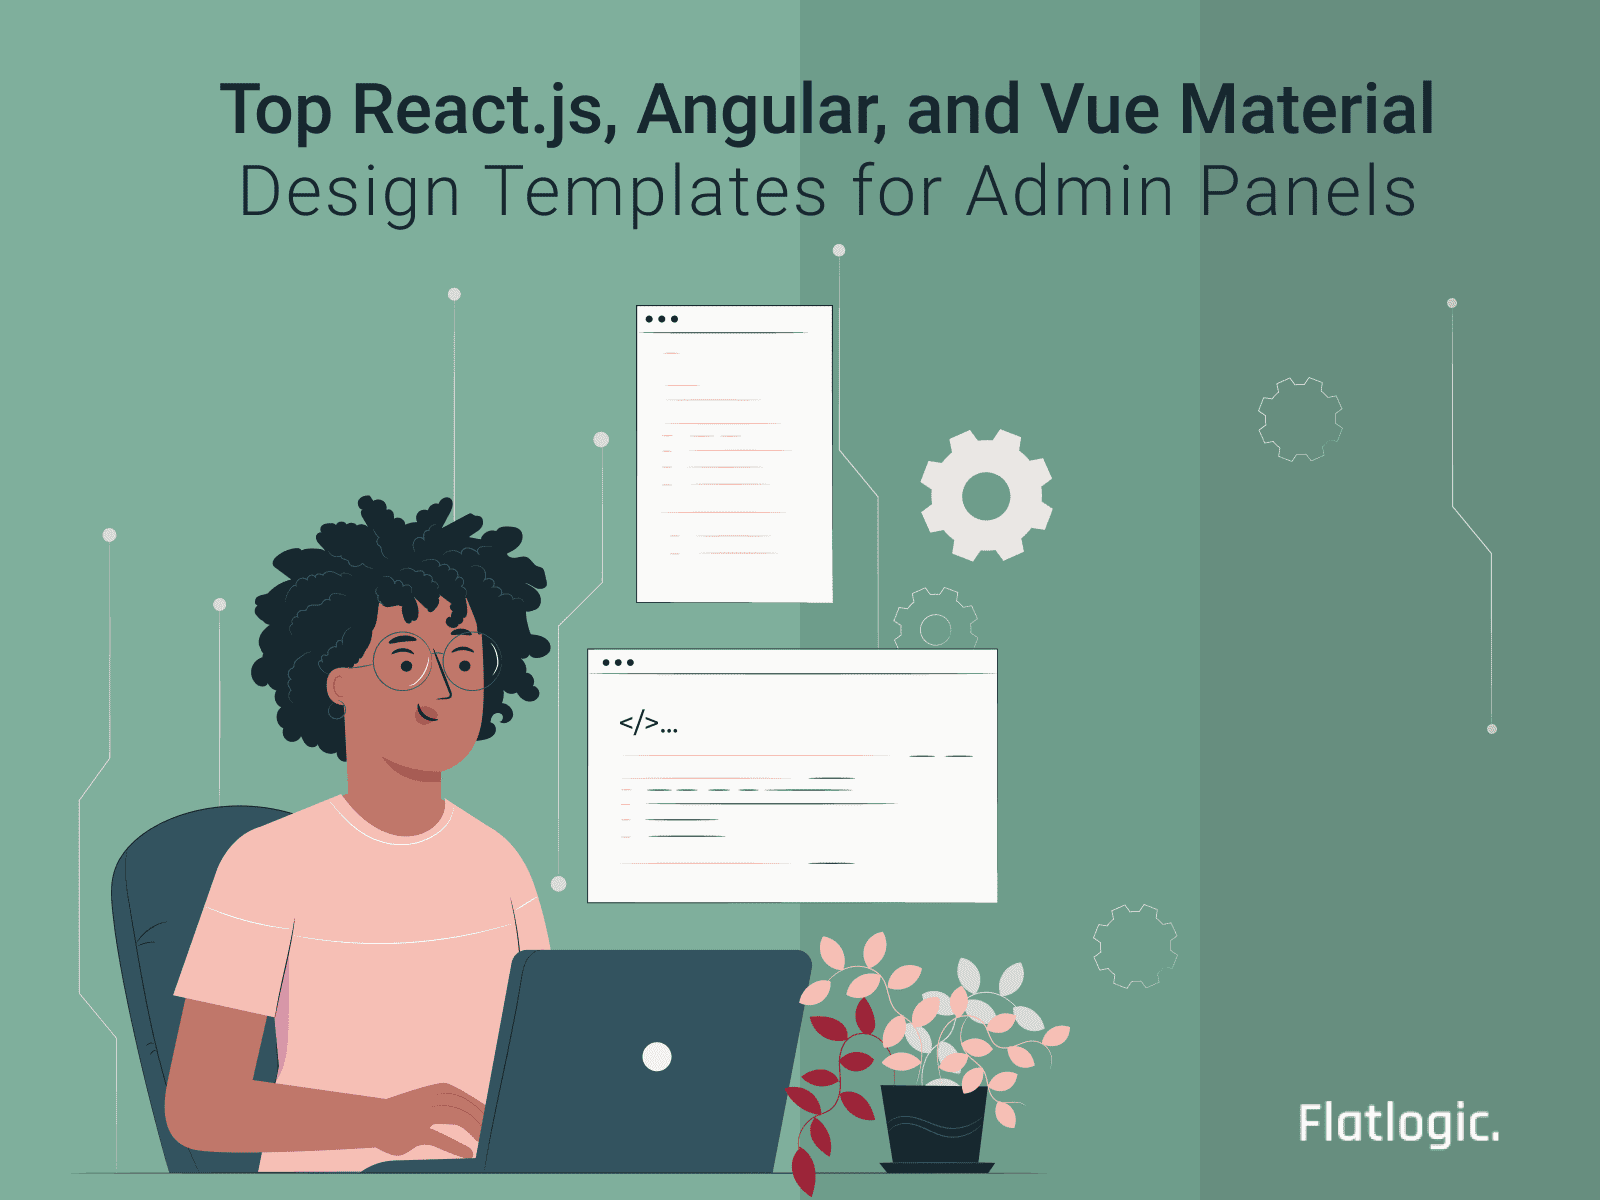 Top 7 React.js, Angular, and Vue Material Design Templates for Admin Panels